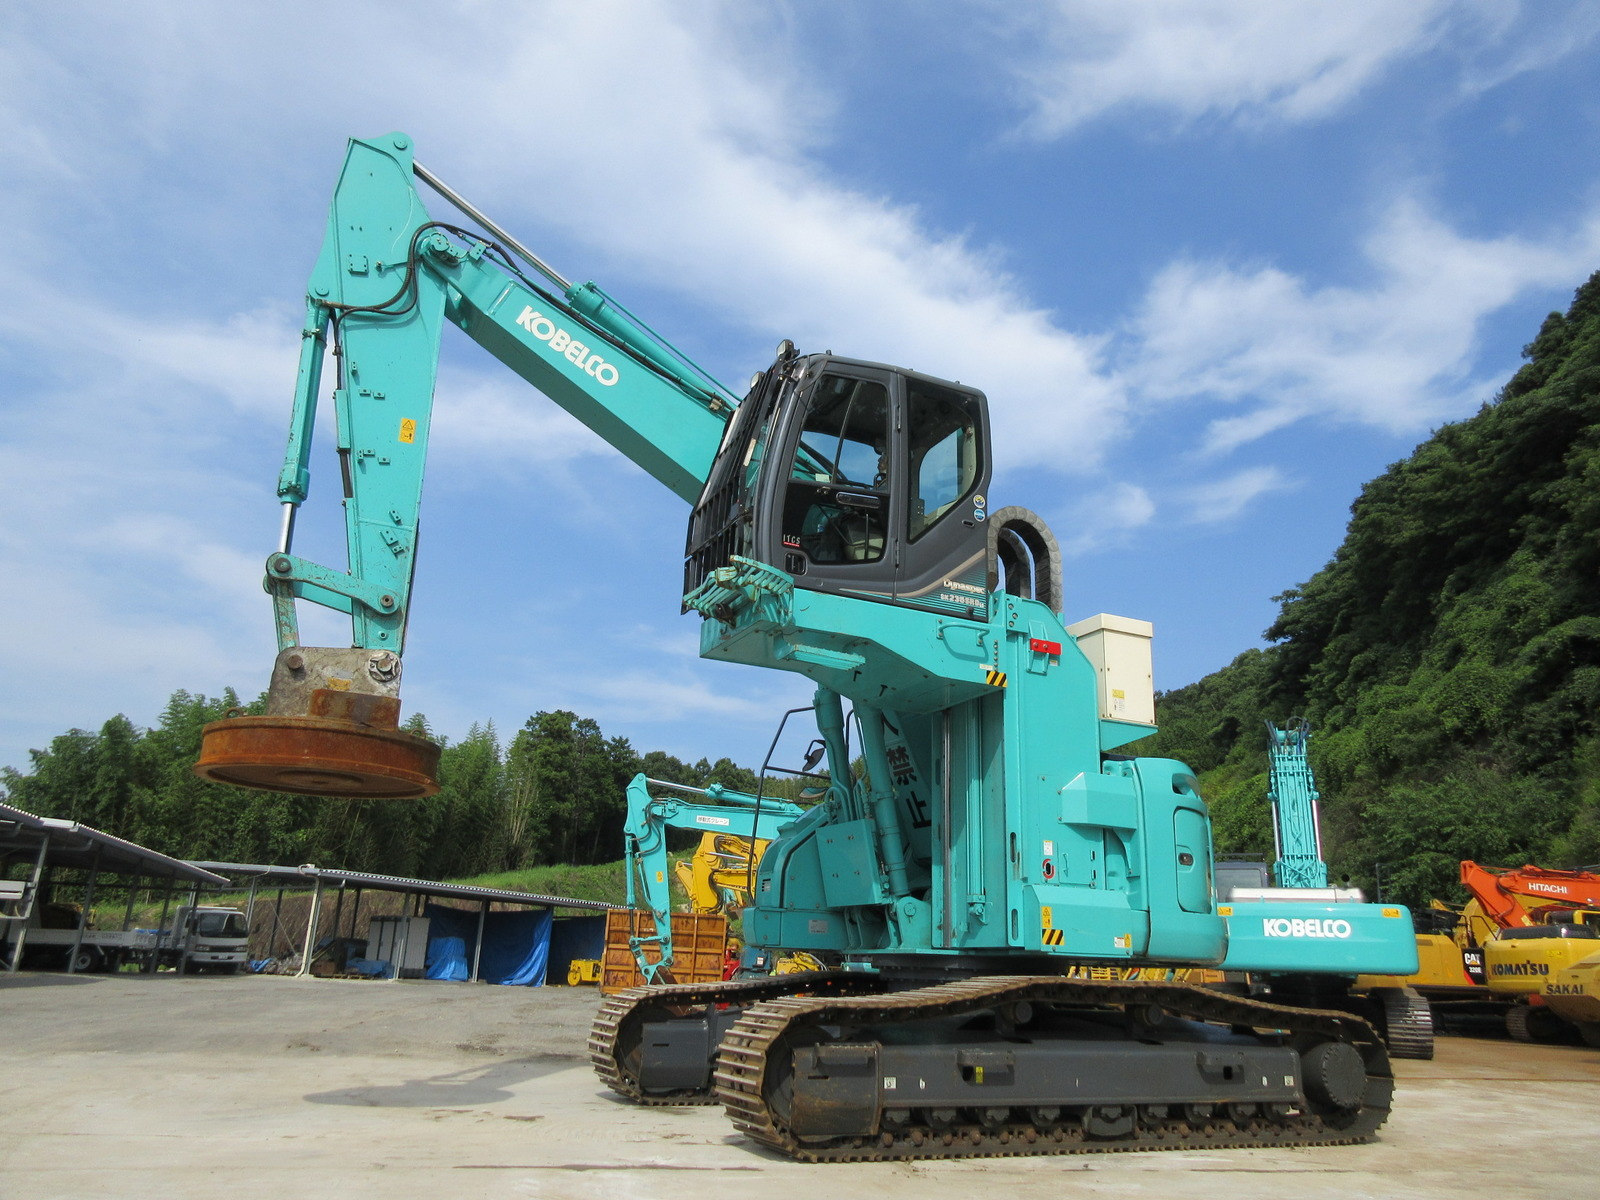 Used Construction Machine used Material Handling / Recycling excavators KOBELCO SK235SRDLC-3 Photos